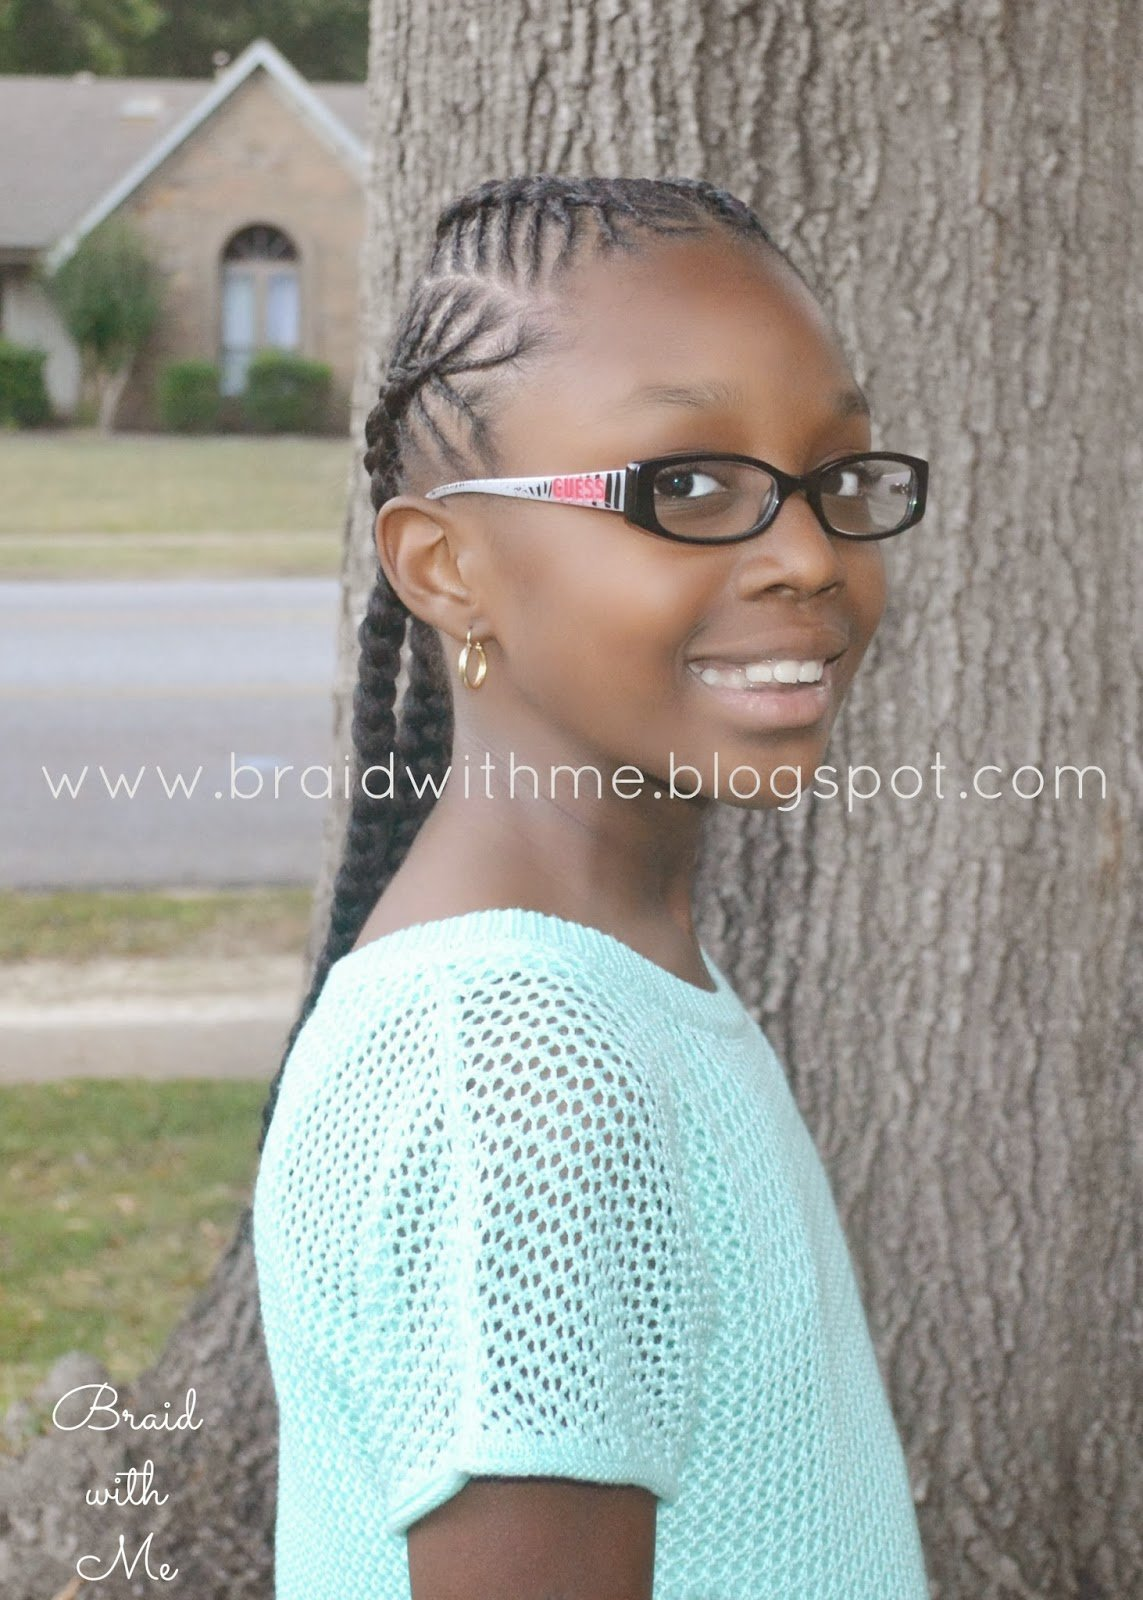 The Best Beads Braids And Beyond Natural Hairstyle For Kids Fish Pictures